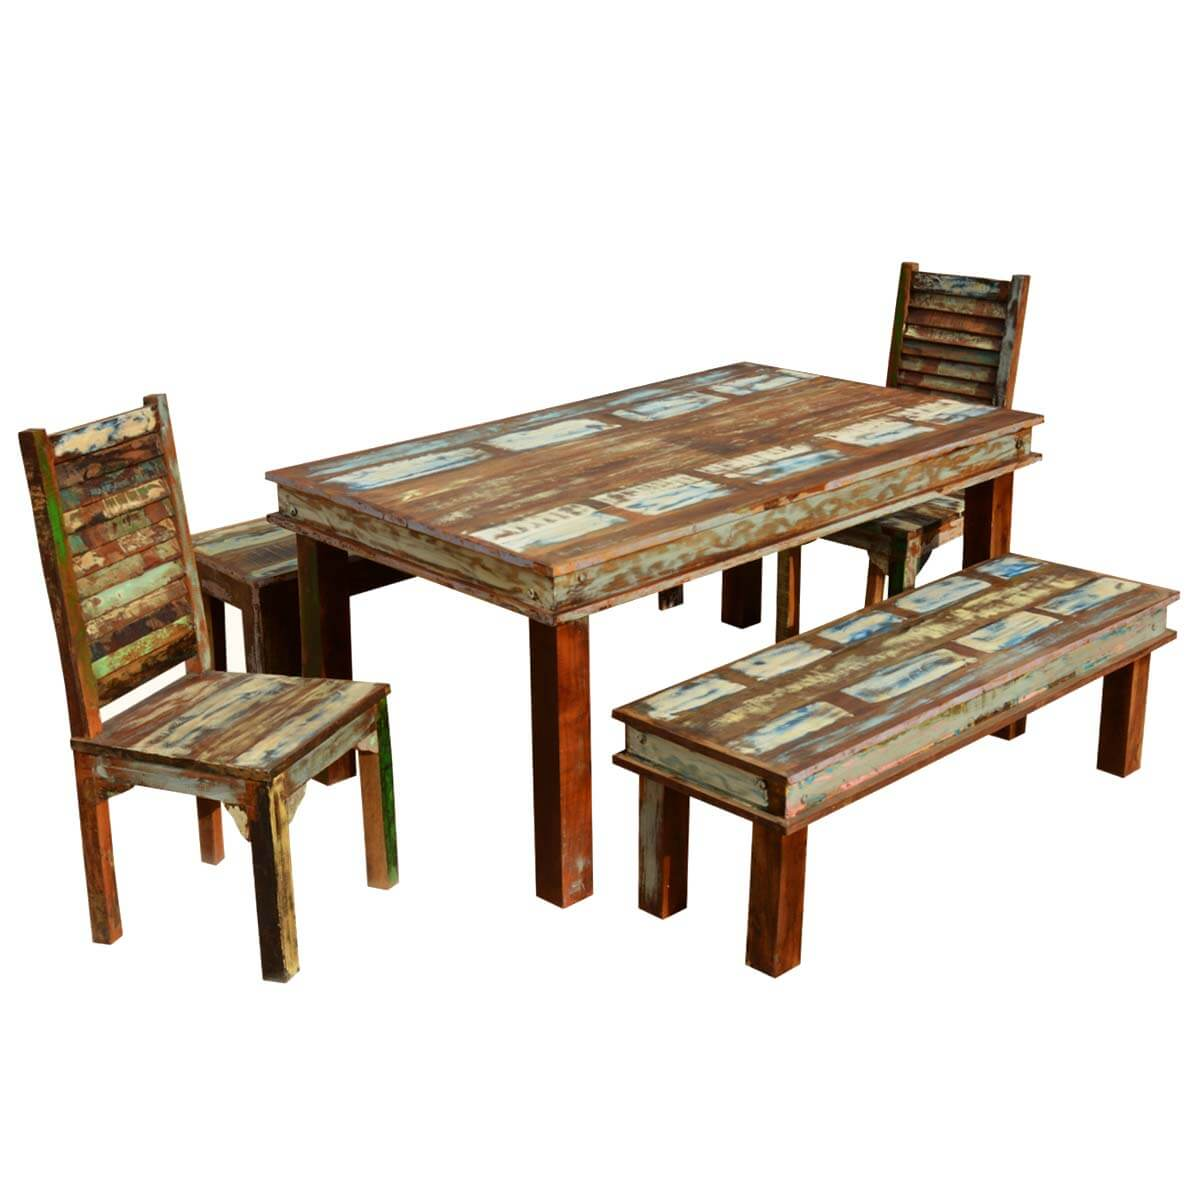 sierra reclaimed wood furniture dining table with 2 chairs 2 benches. Black Bedroom Furniture Sets. Home Design Ideas